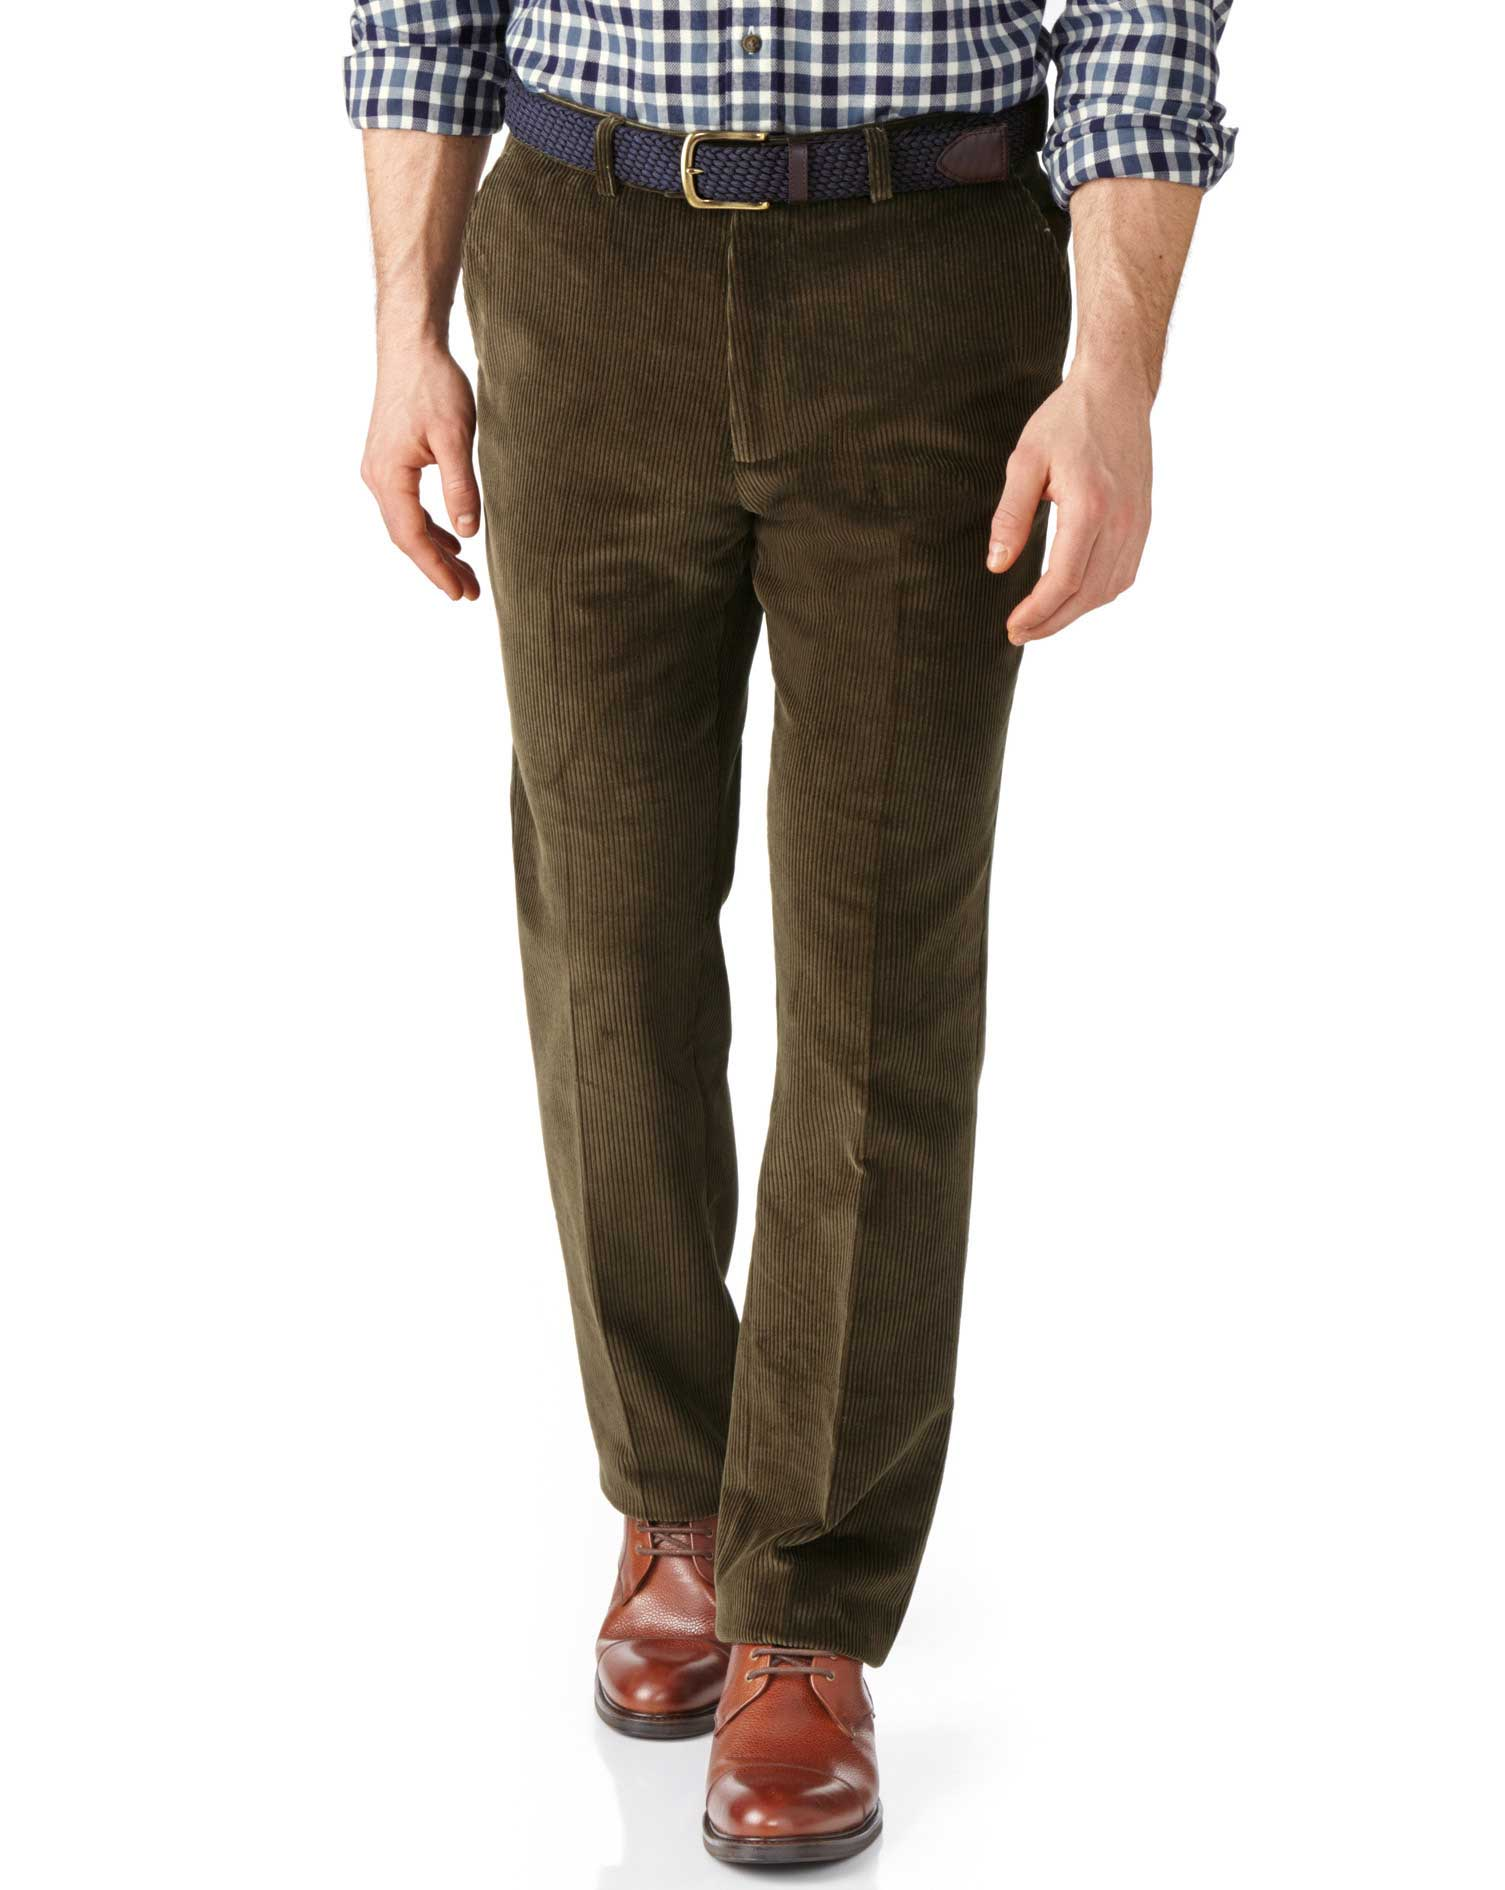 Olive Slim Fit Jumbo Cord Trousers Size W40 L30 by Charles Tyrwhitt